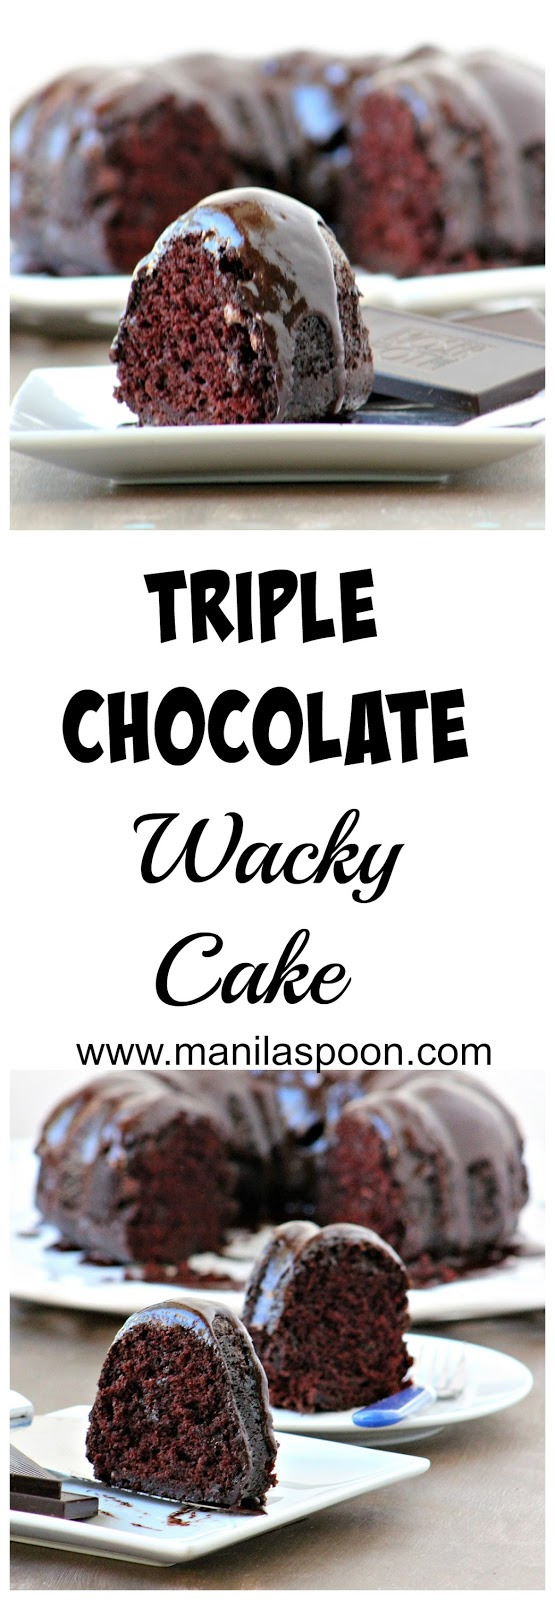 This version of the Depression (Wacky) cake is truly scrumptious - still an EGG-FREE and DAIRY-FREE cake batter but with triple the chocolate goodness! A very well-loved recipe, indeed!